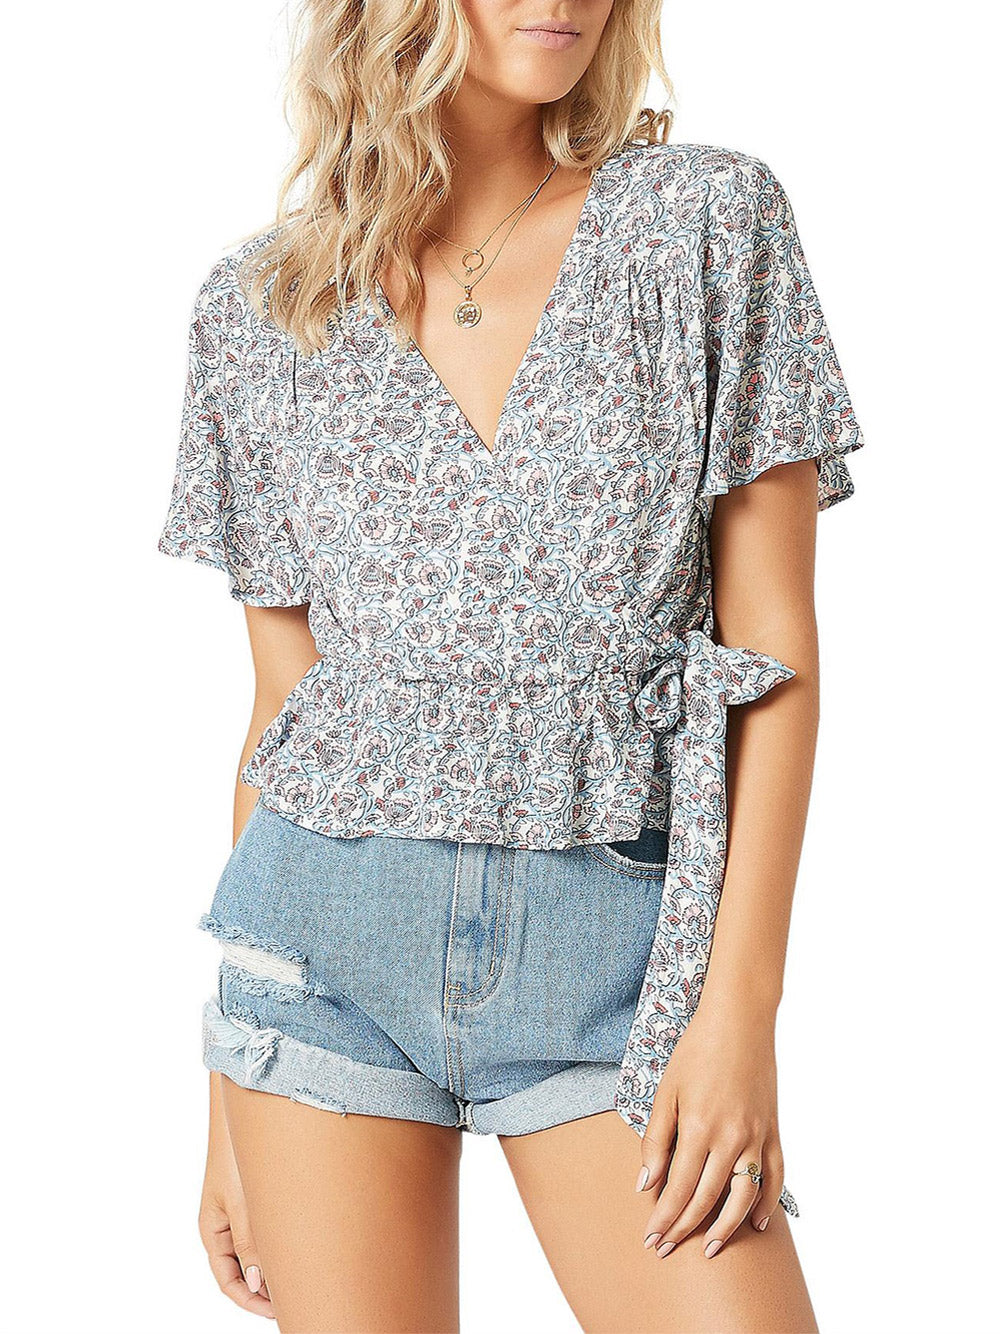 MINKPINK Love Crush Blouse